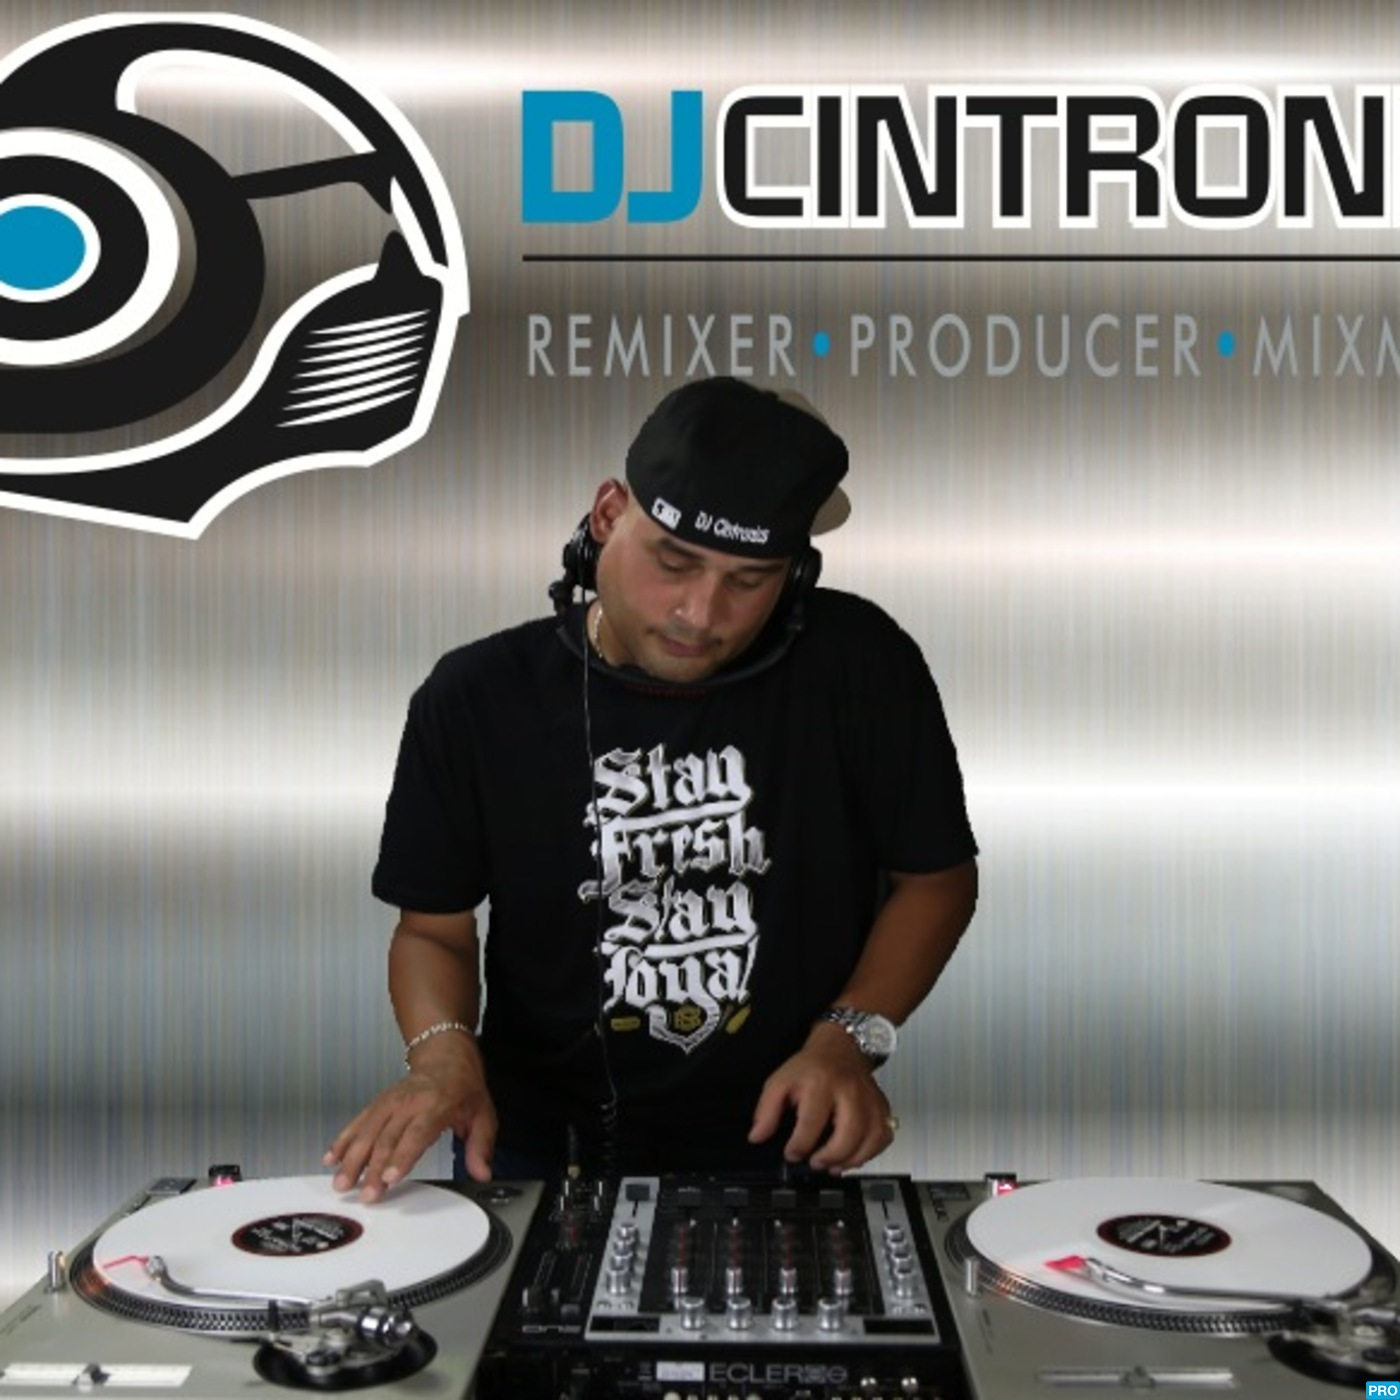 DJ Cintronics' Podcast